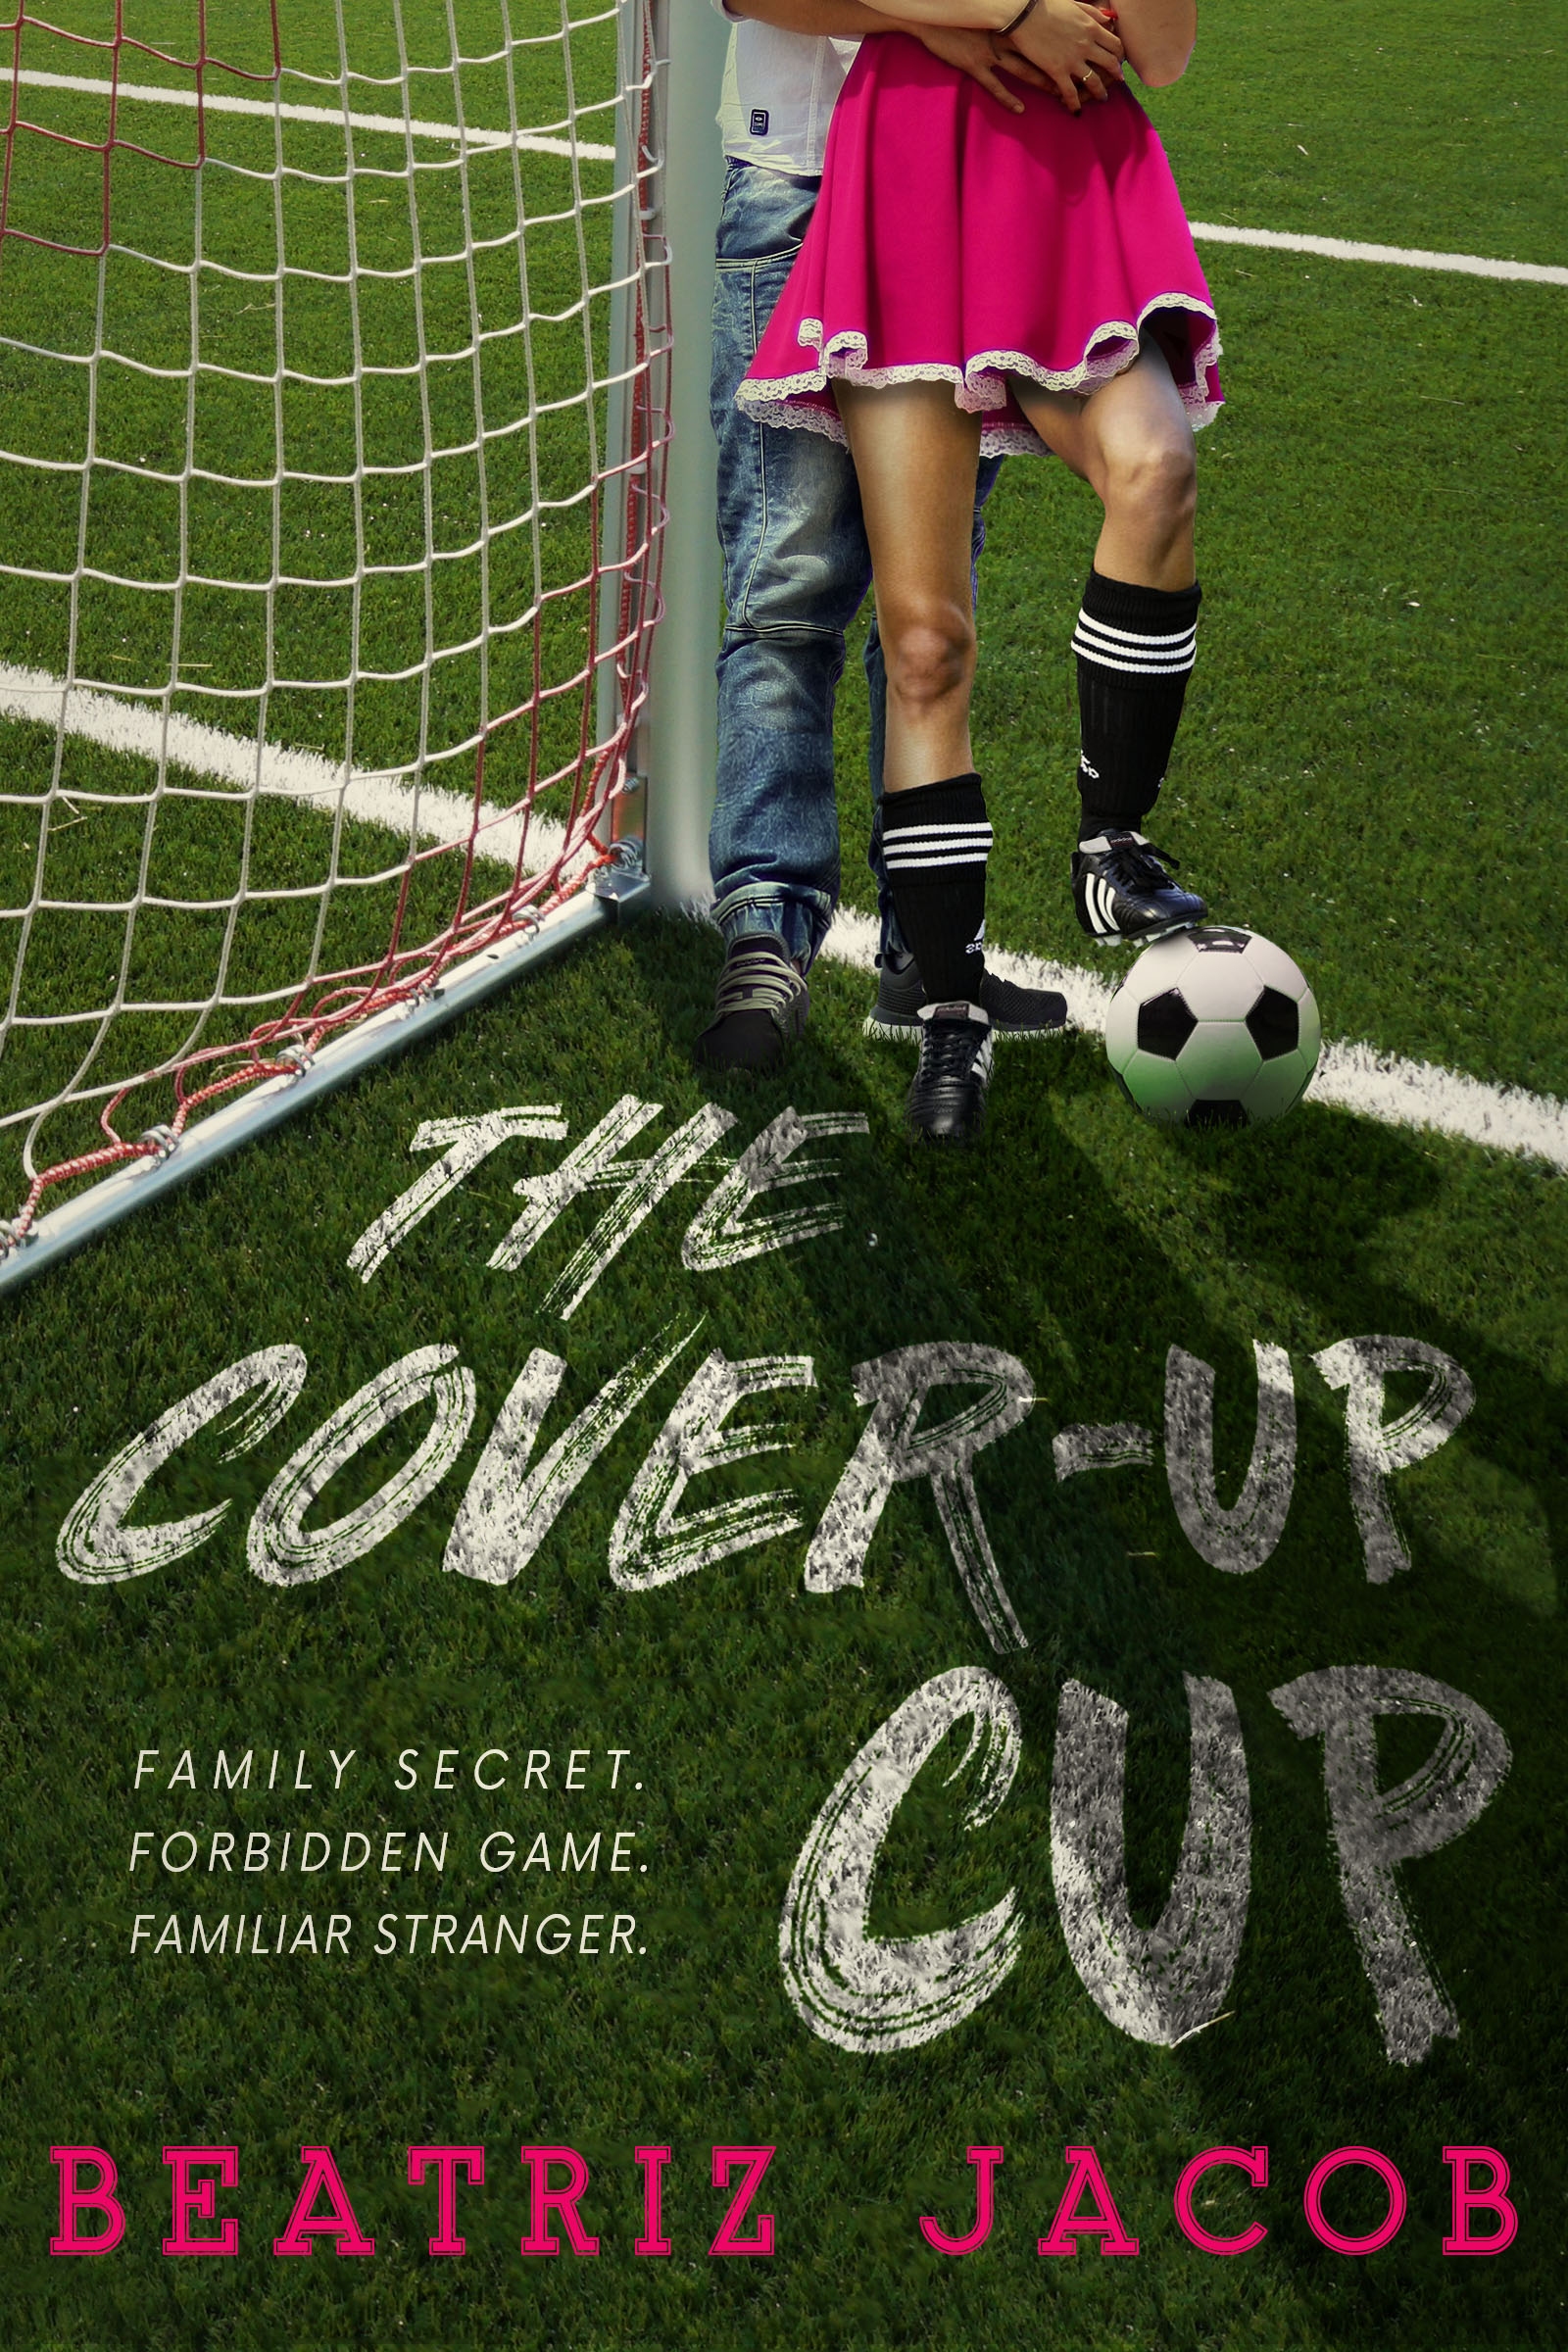 The cover-up cup